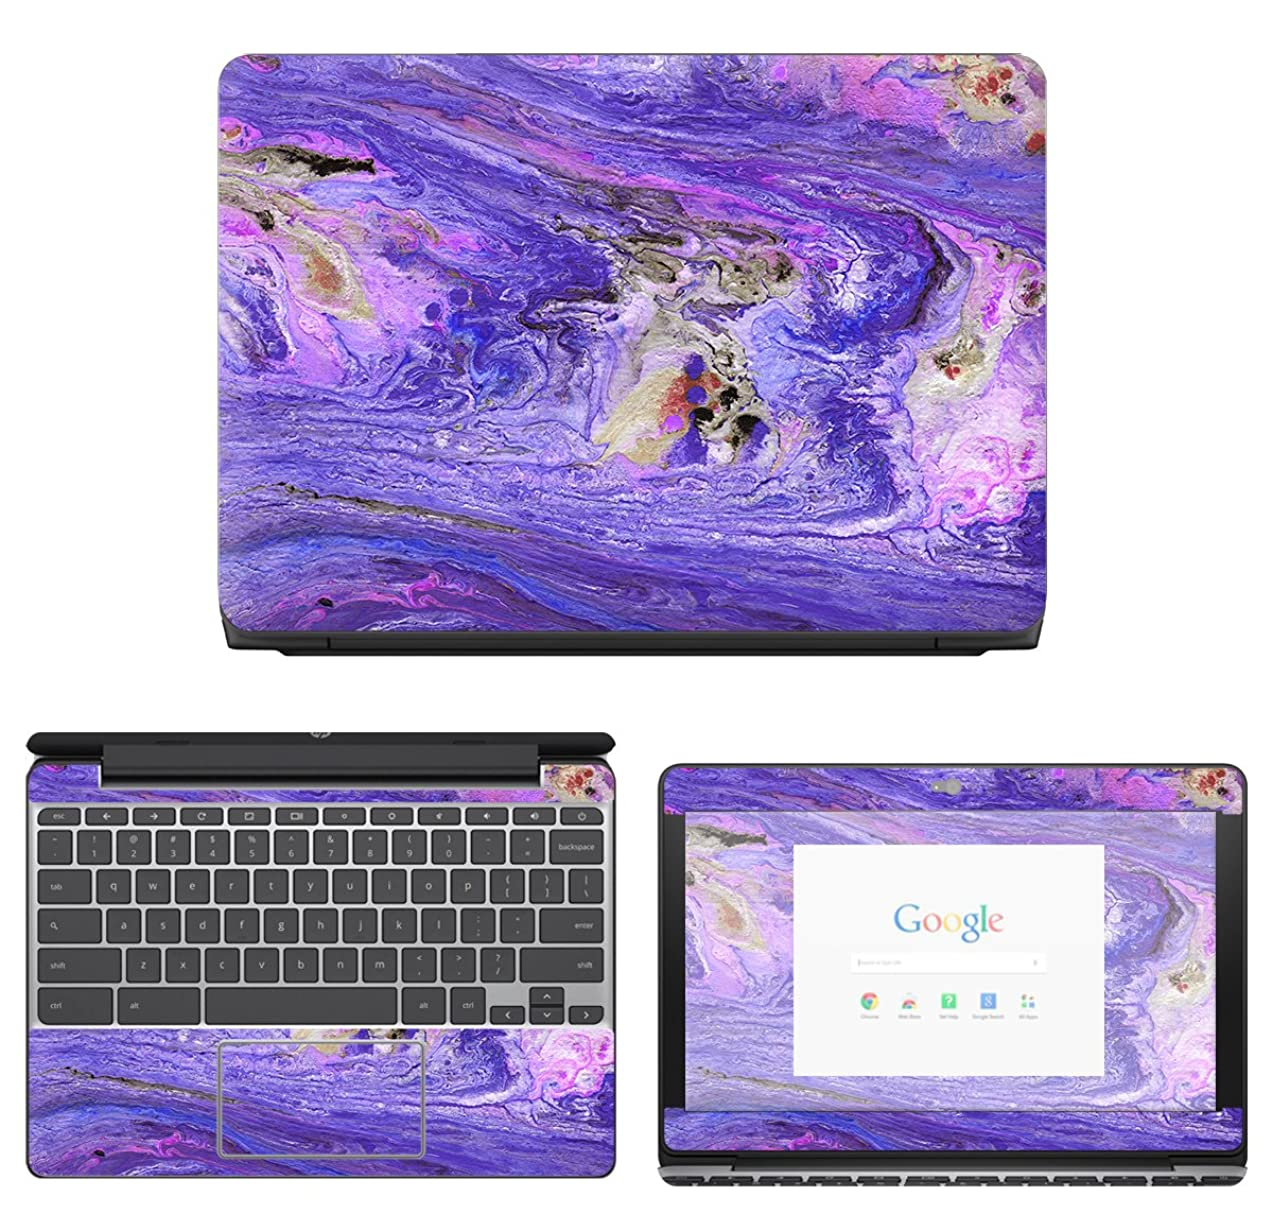 Decalrus - Protective Decal Skin Sticker for HP ChromeBook 11-v010nr (11.6